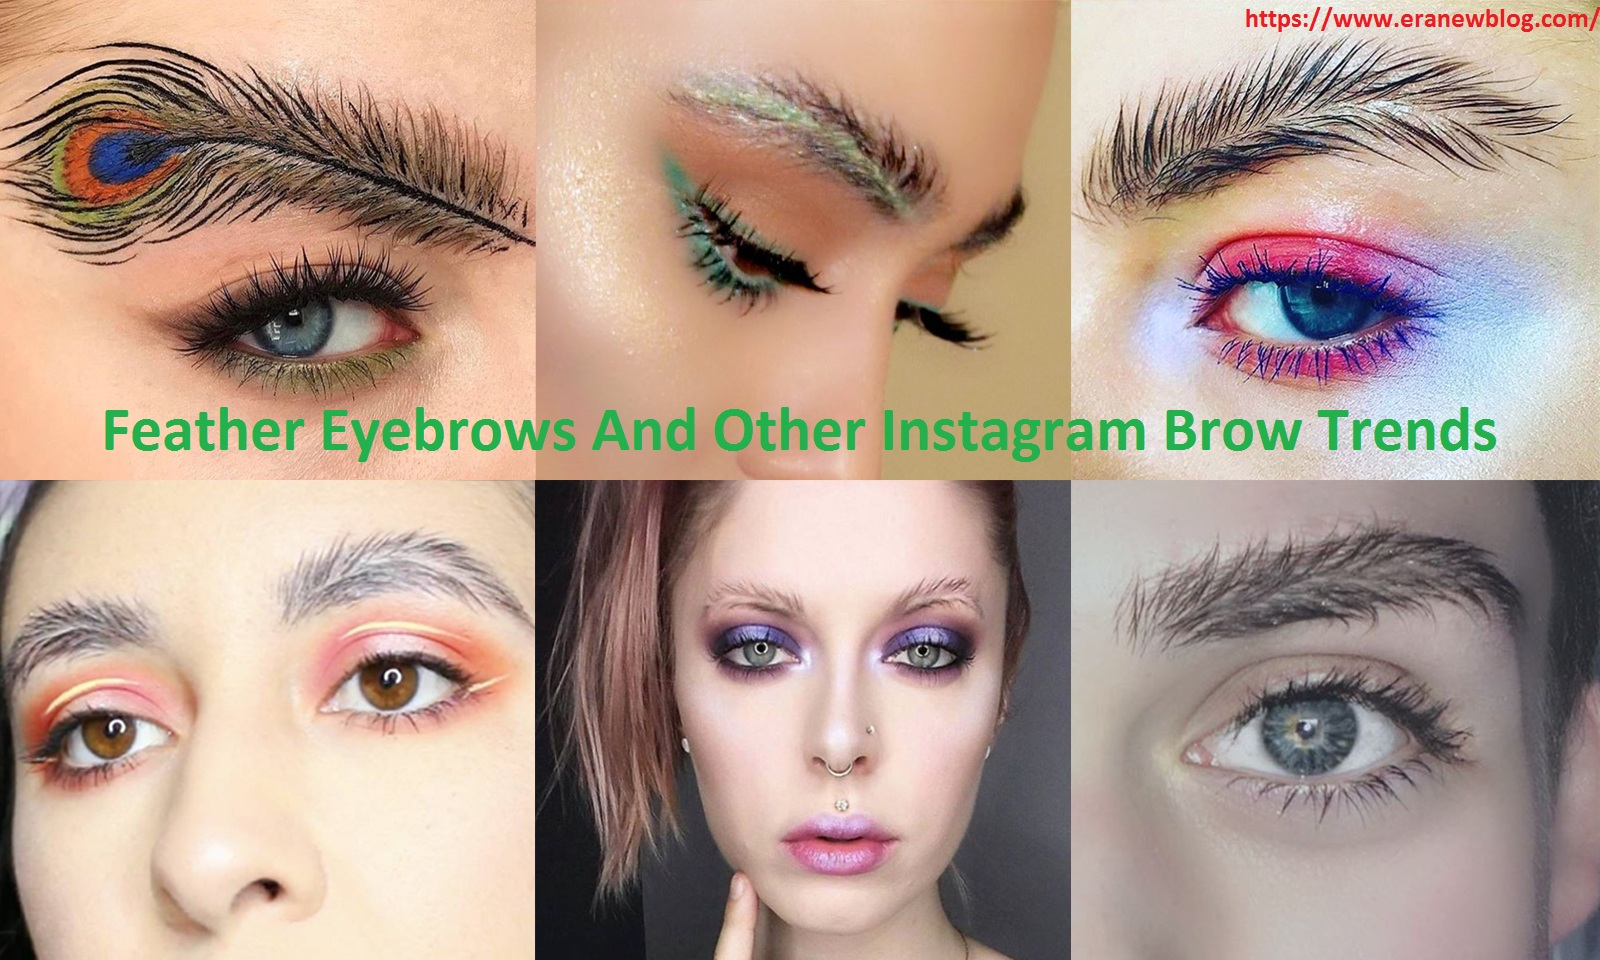 Feather Eyebrows And Other Instagram Brow Trends